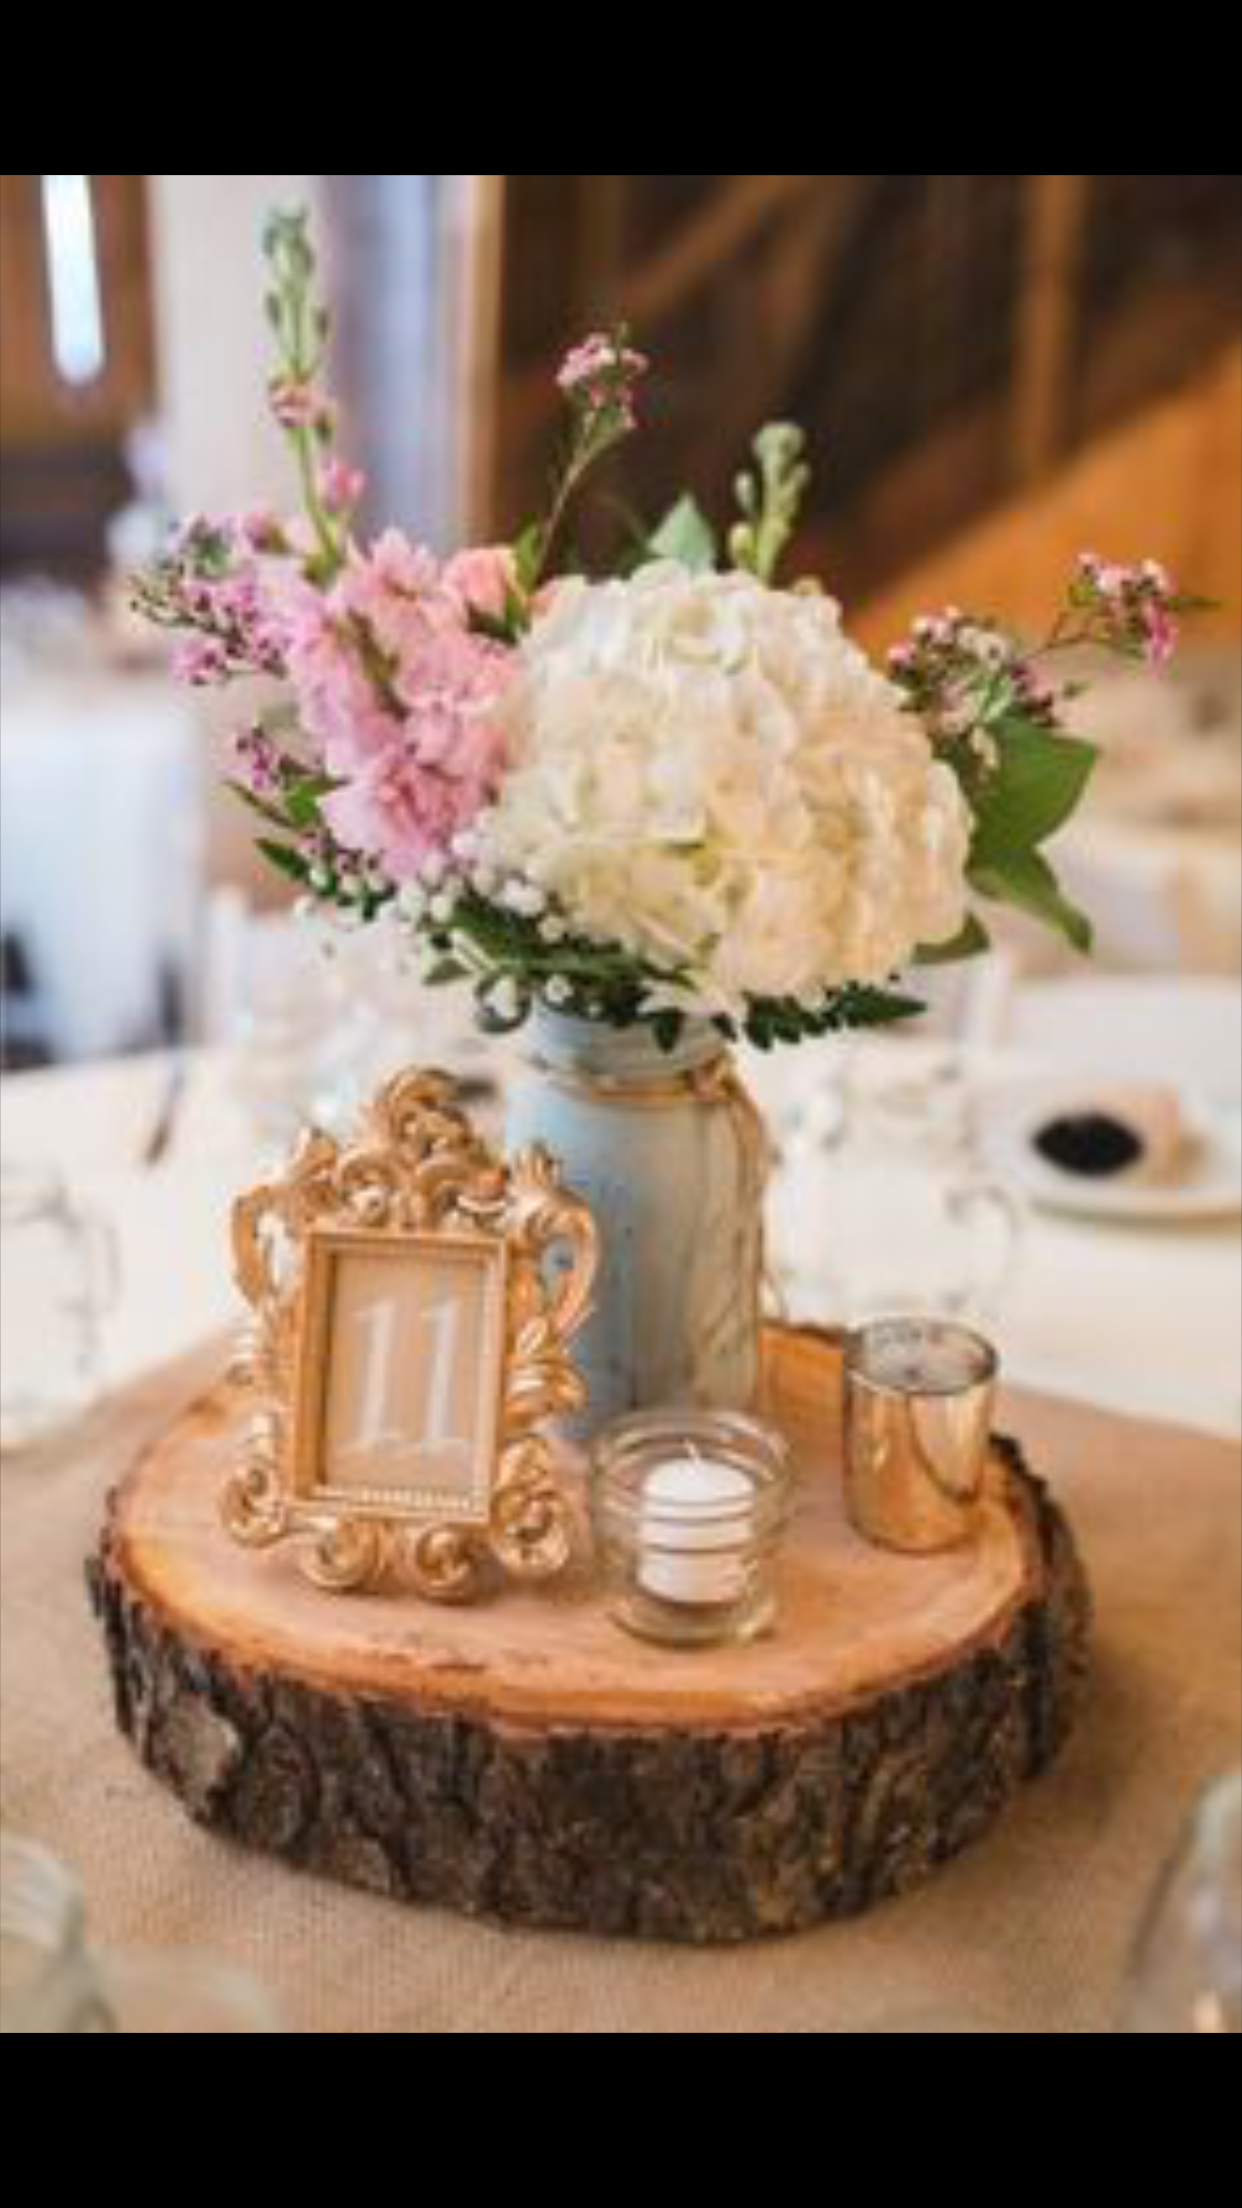 Wedding Reception Center Piece On A Wood Slab With Gold